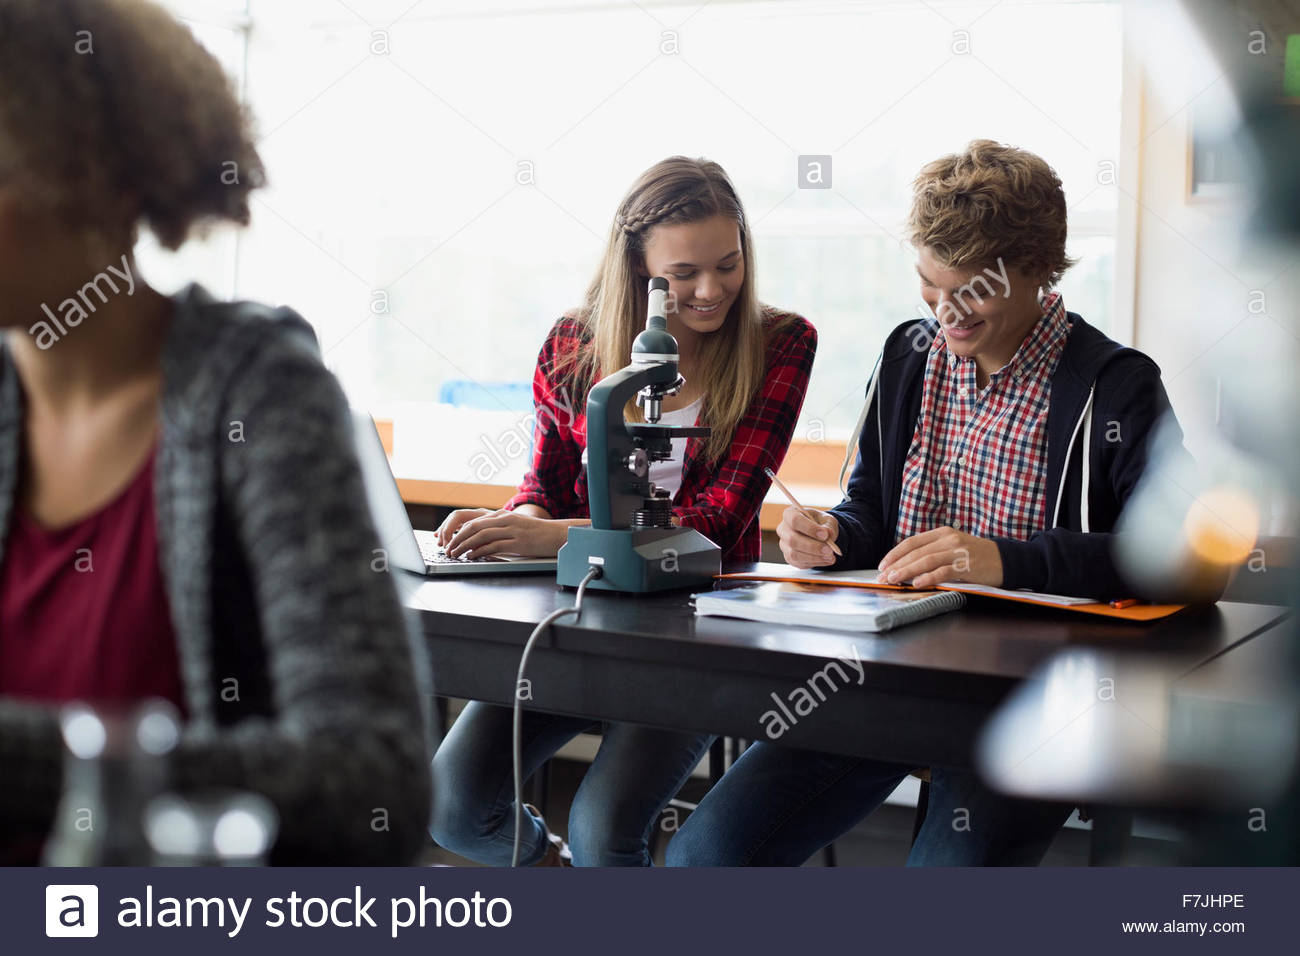 High school students taking notes at microscope - Stock Image